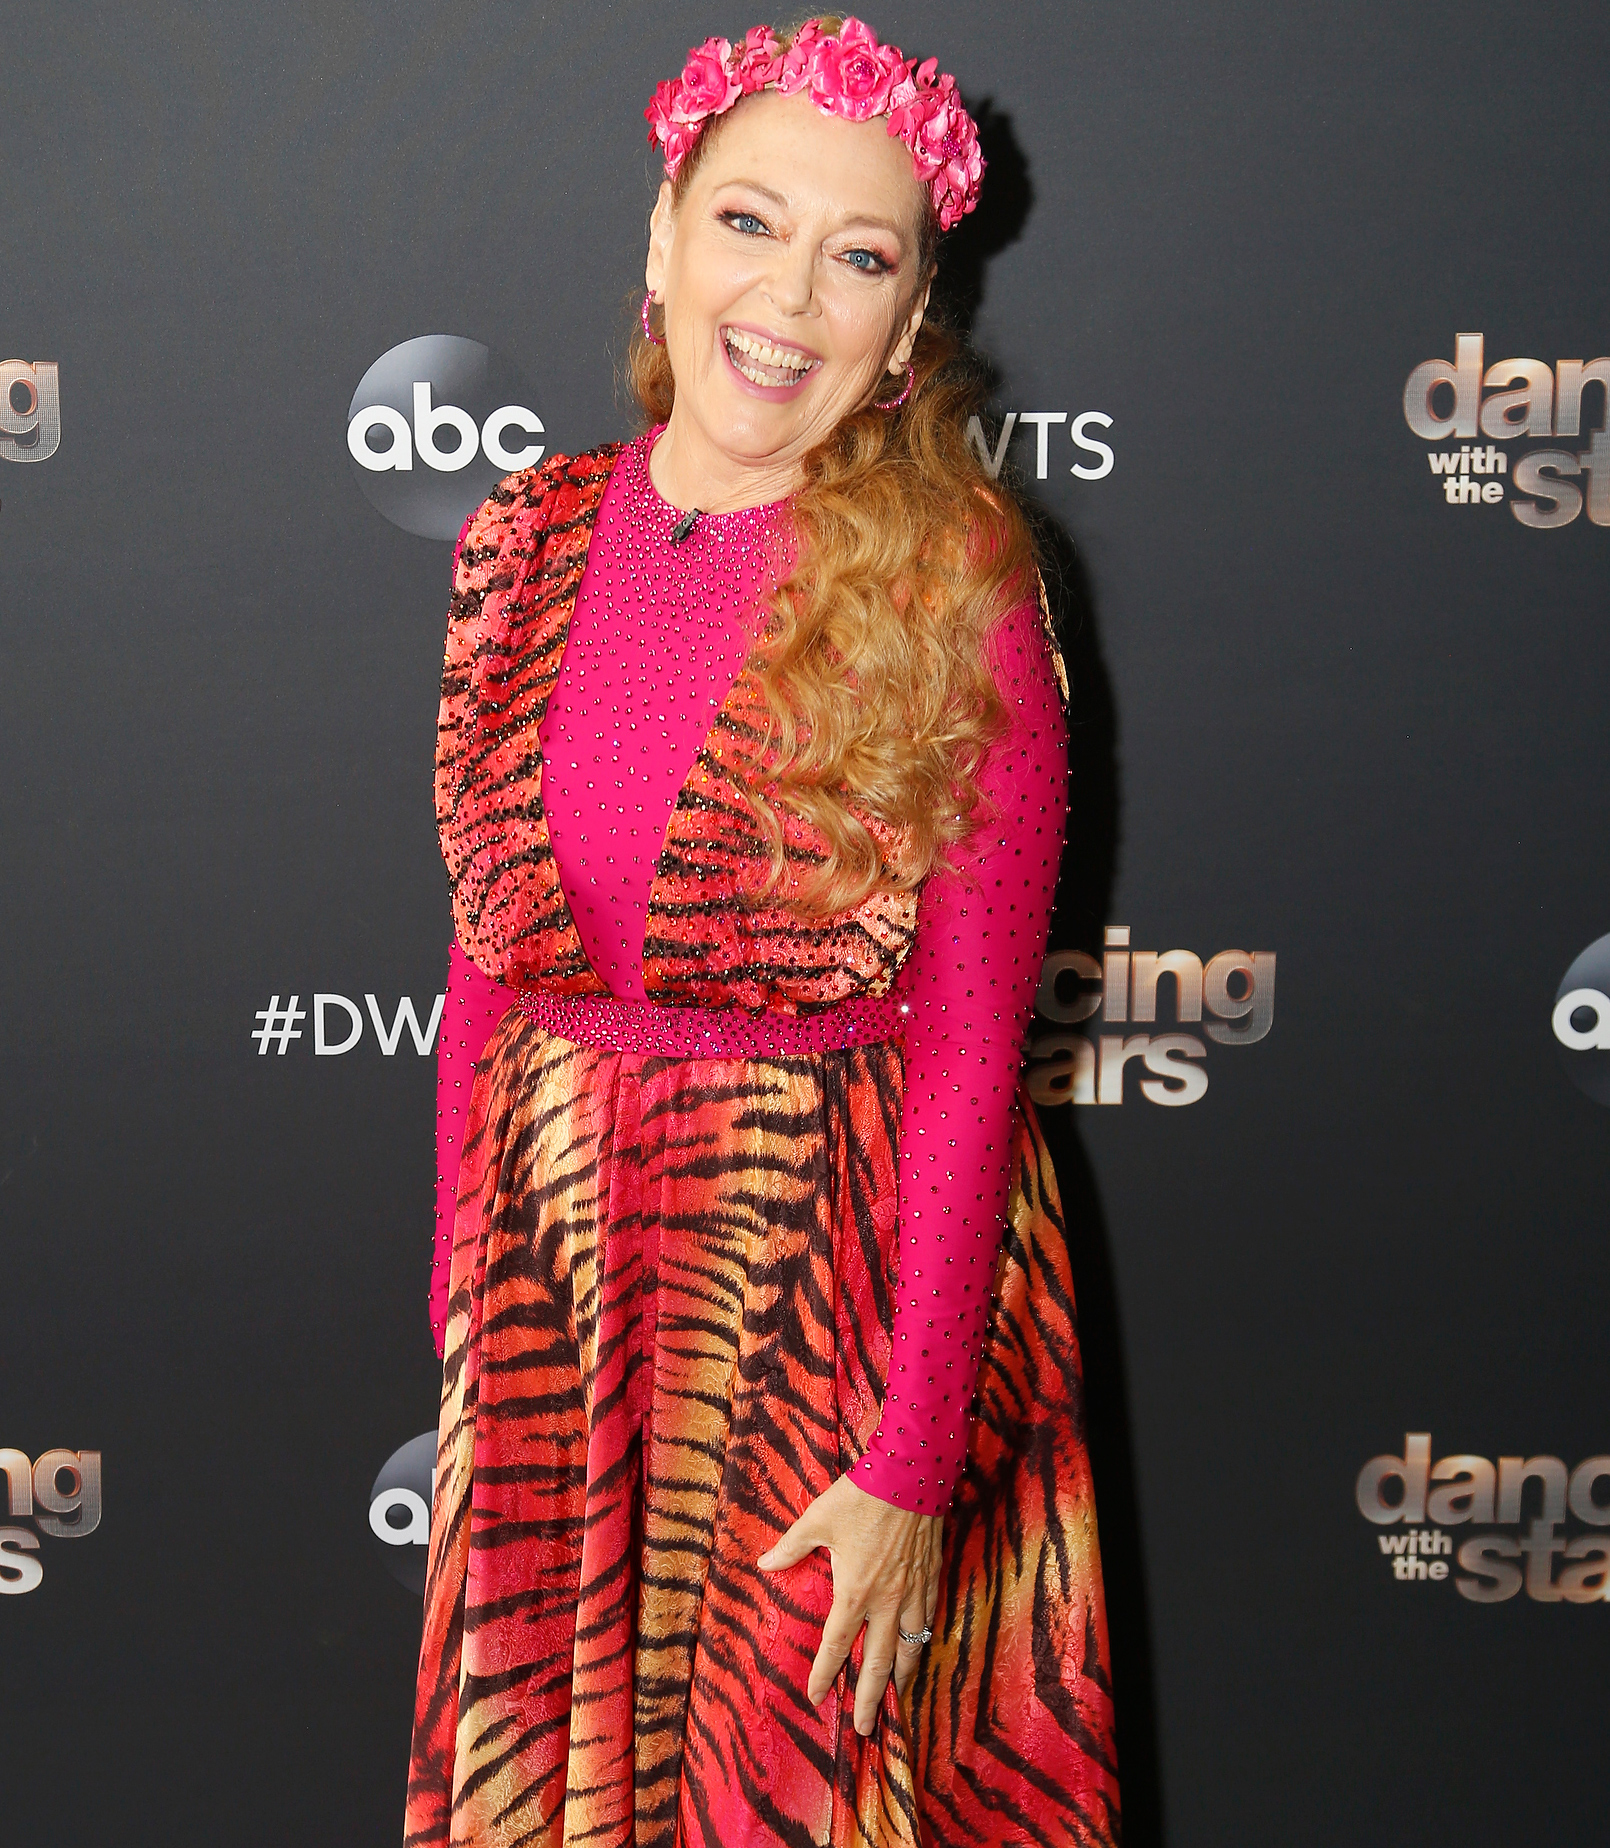 Tiger King's Carole Baskin on DWTS and Denise Richards' and Brandi Glanville's steamy love affair details